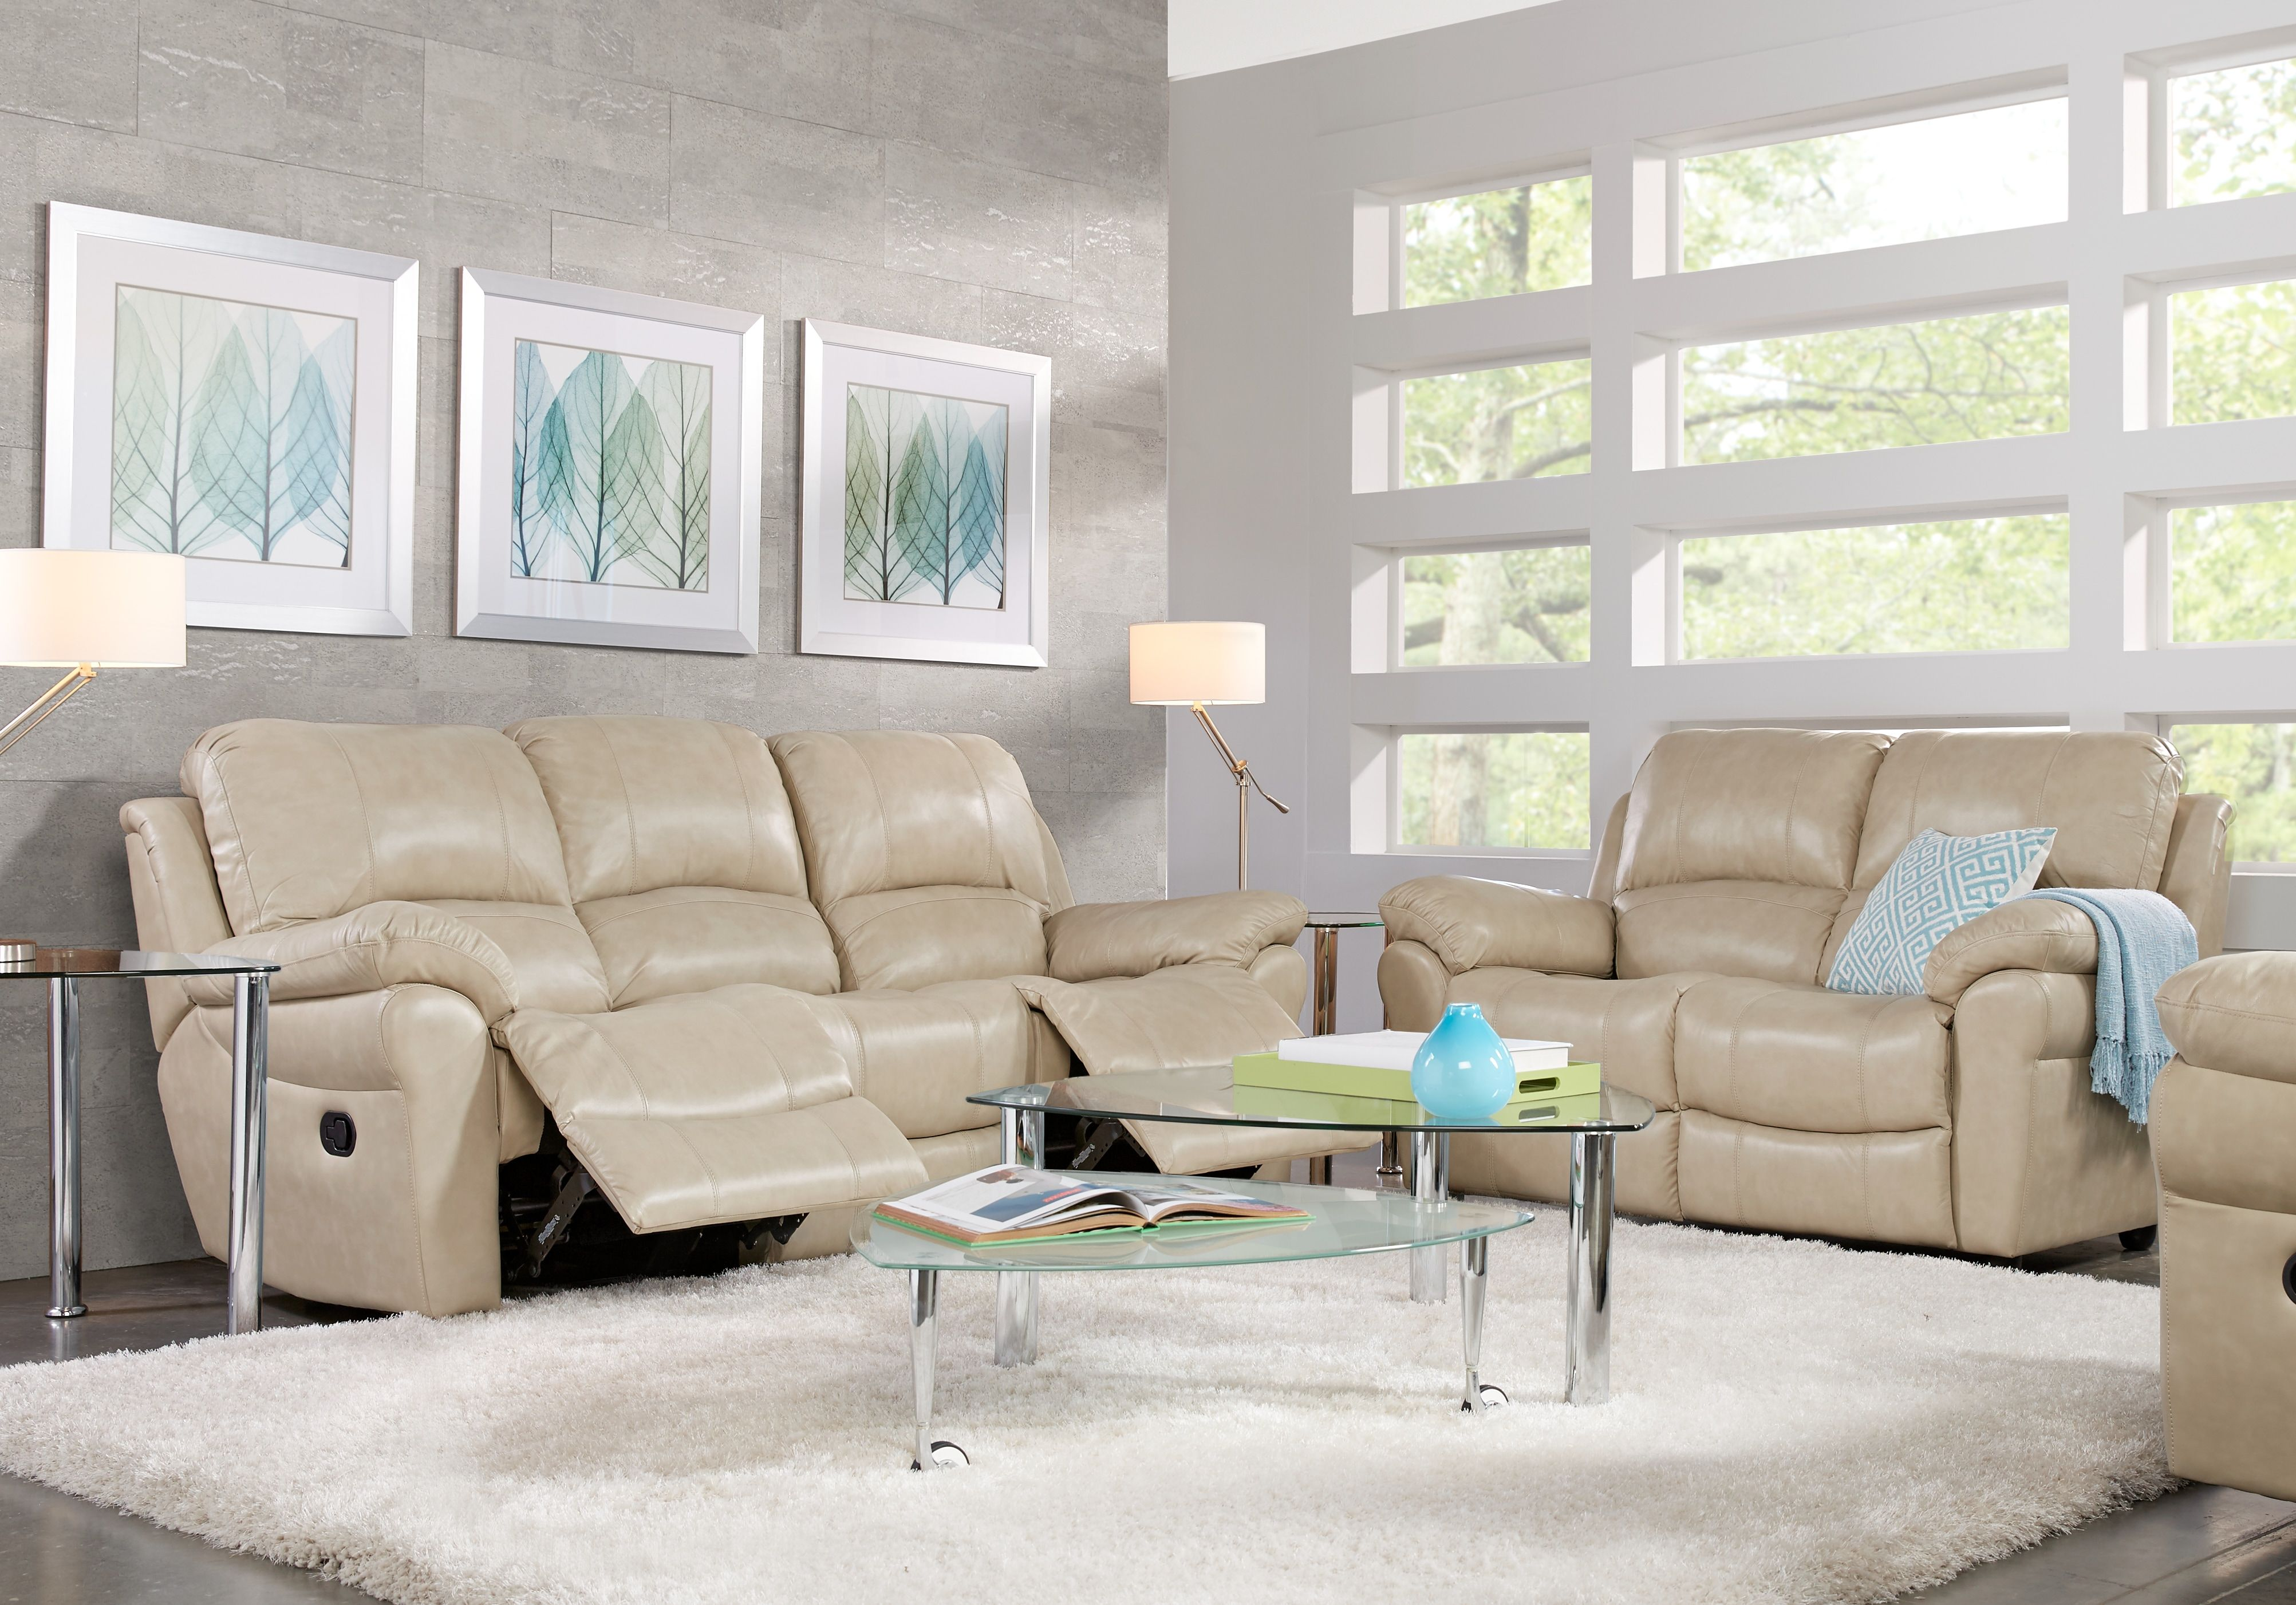 Vercelli Stone Leather 3 Pc Living Room With Reclining Sofa Living Room Leather Brown Couch Living Room Quality Living Room Furniture